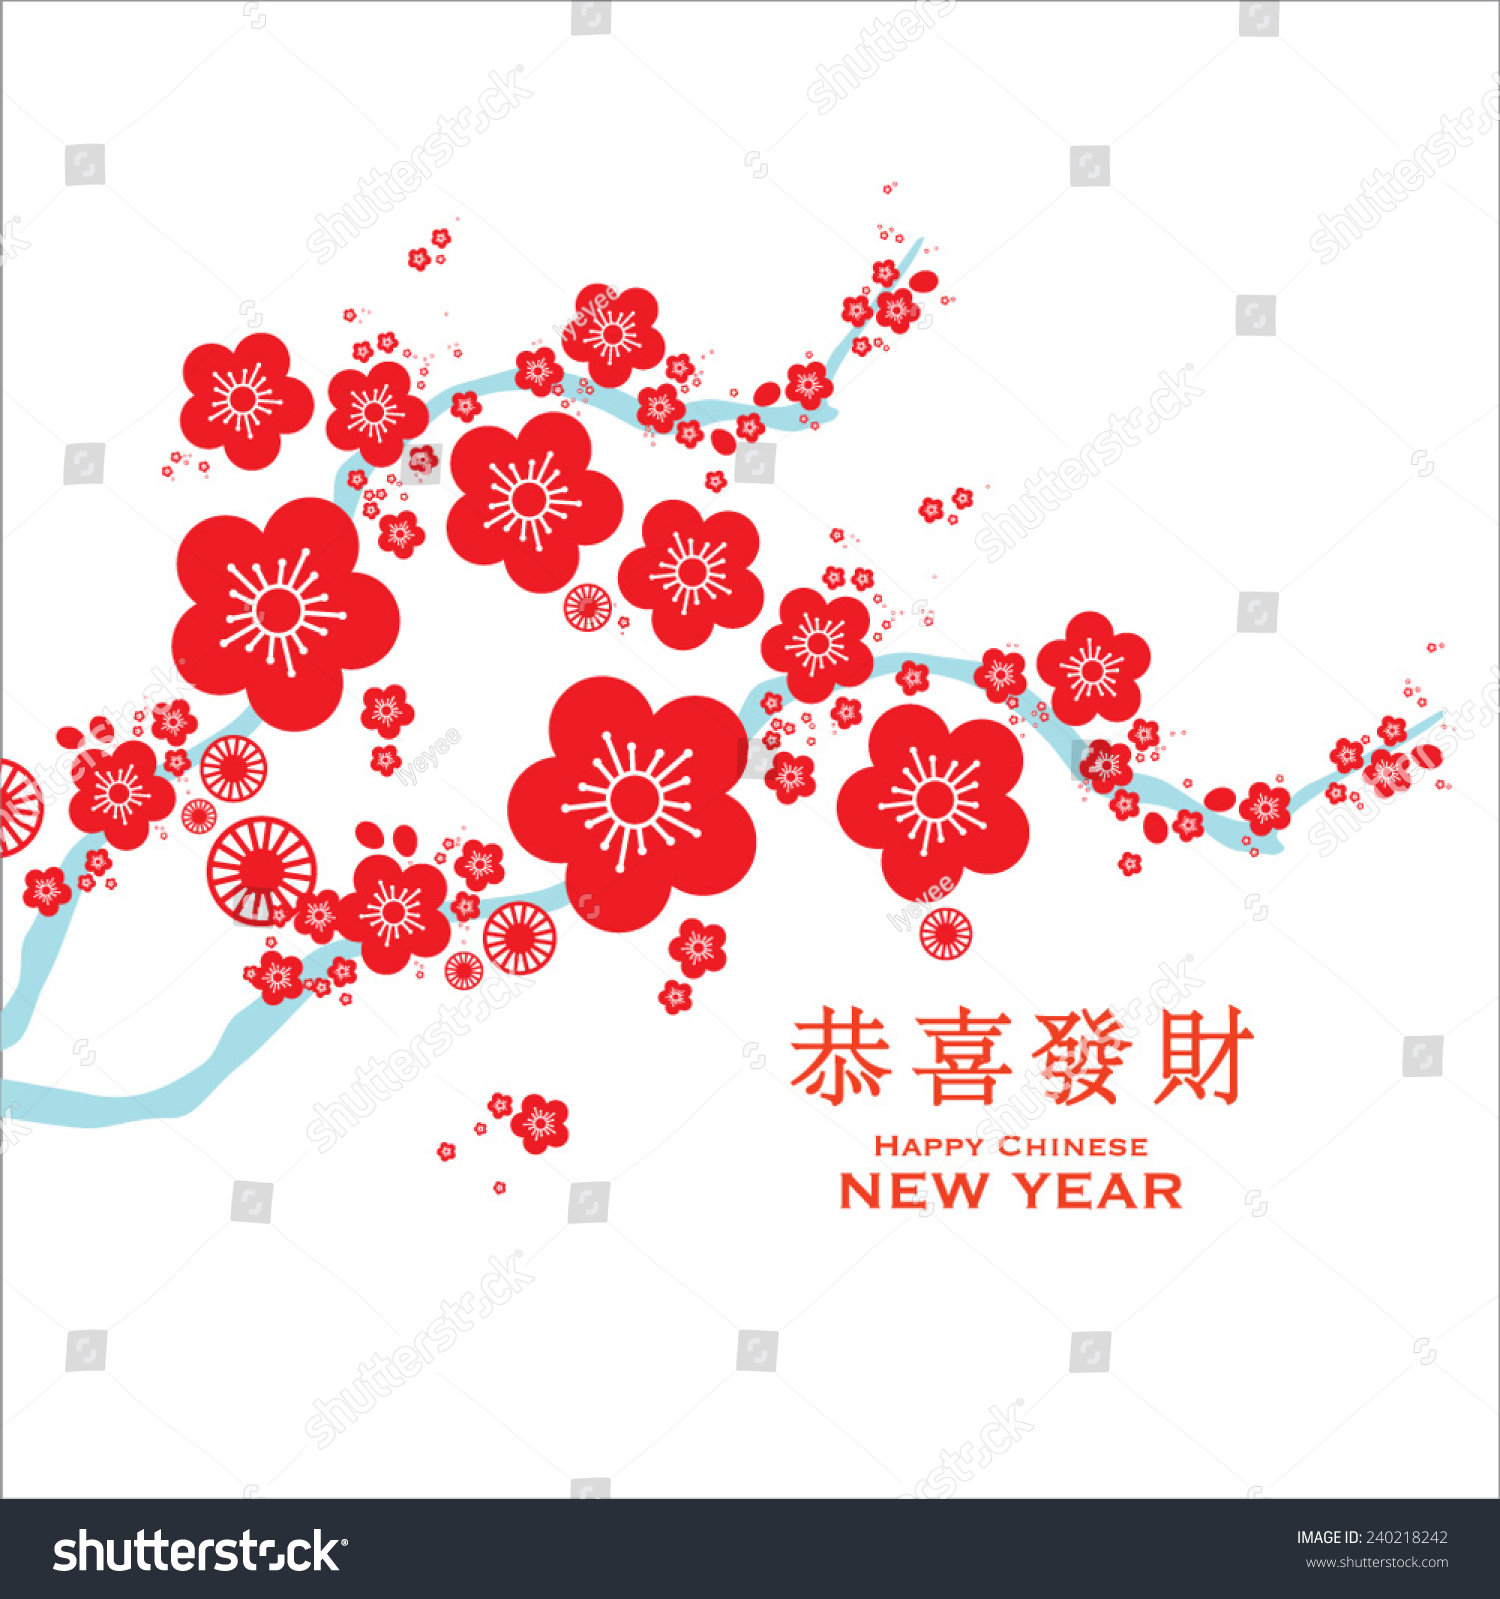 Cherry Blossom Chinese New Year Greetings Stock Vector Royalty Free